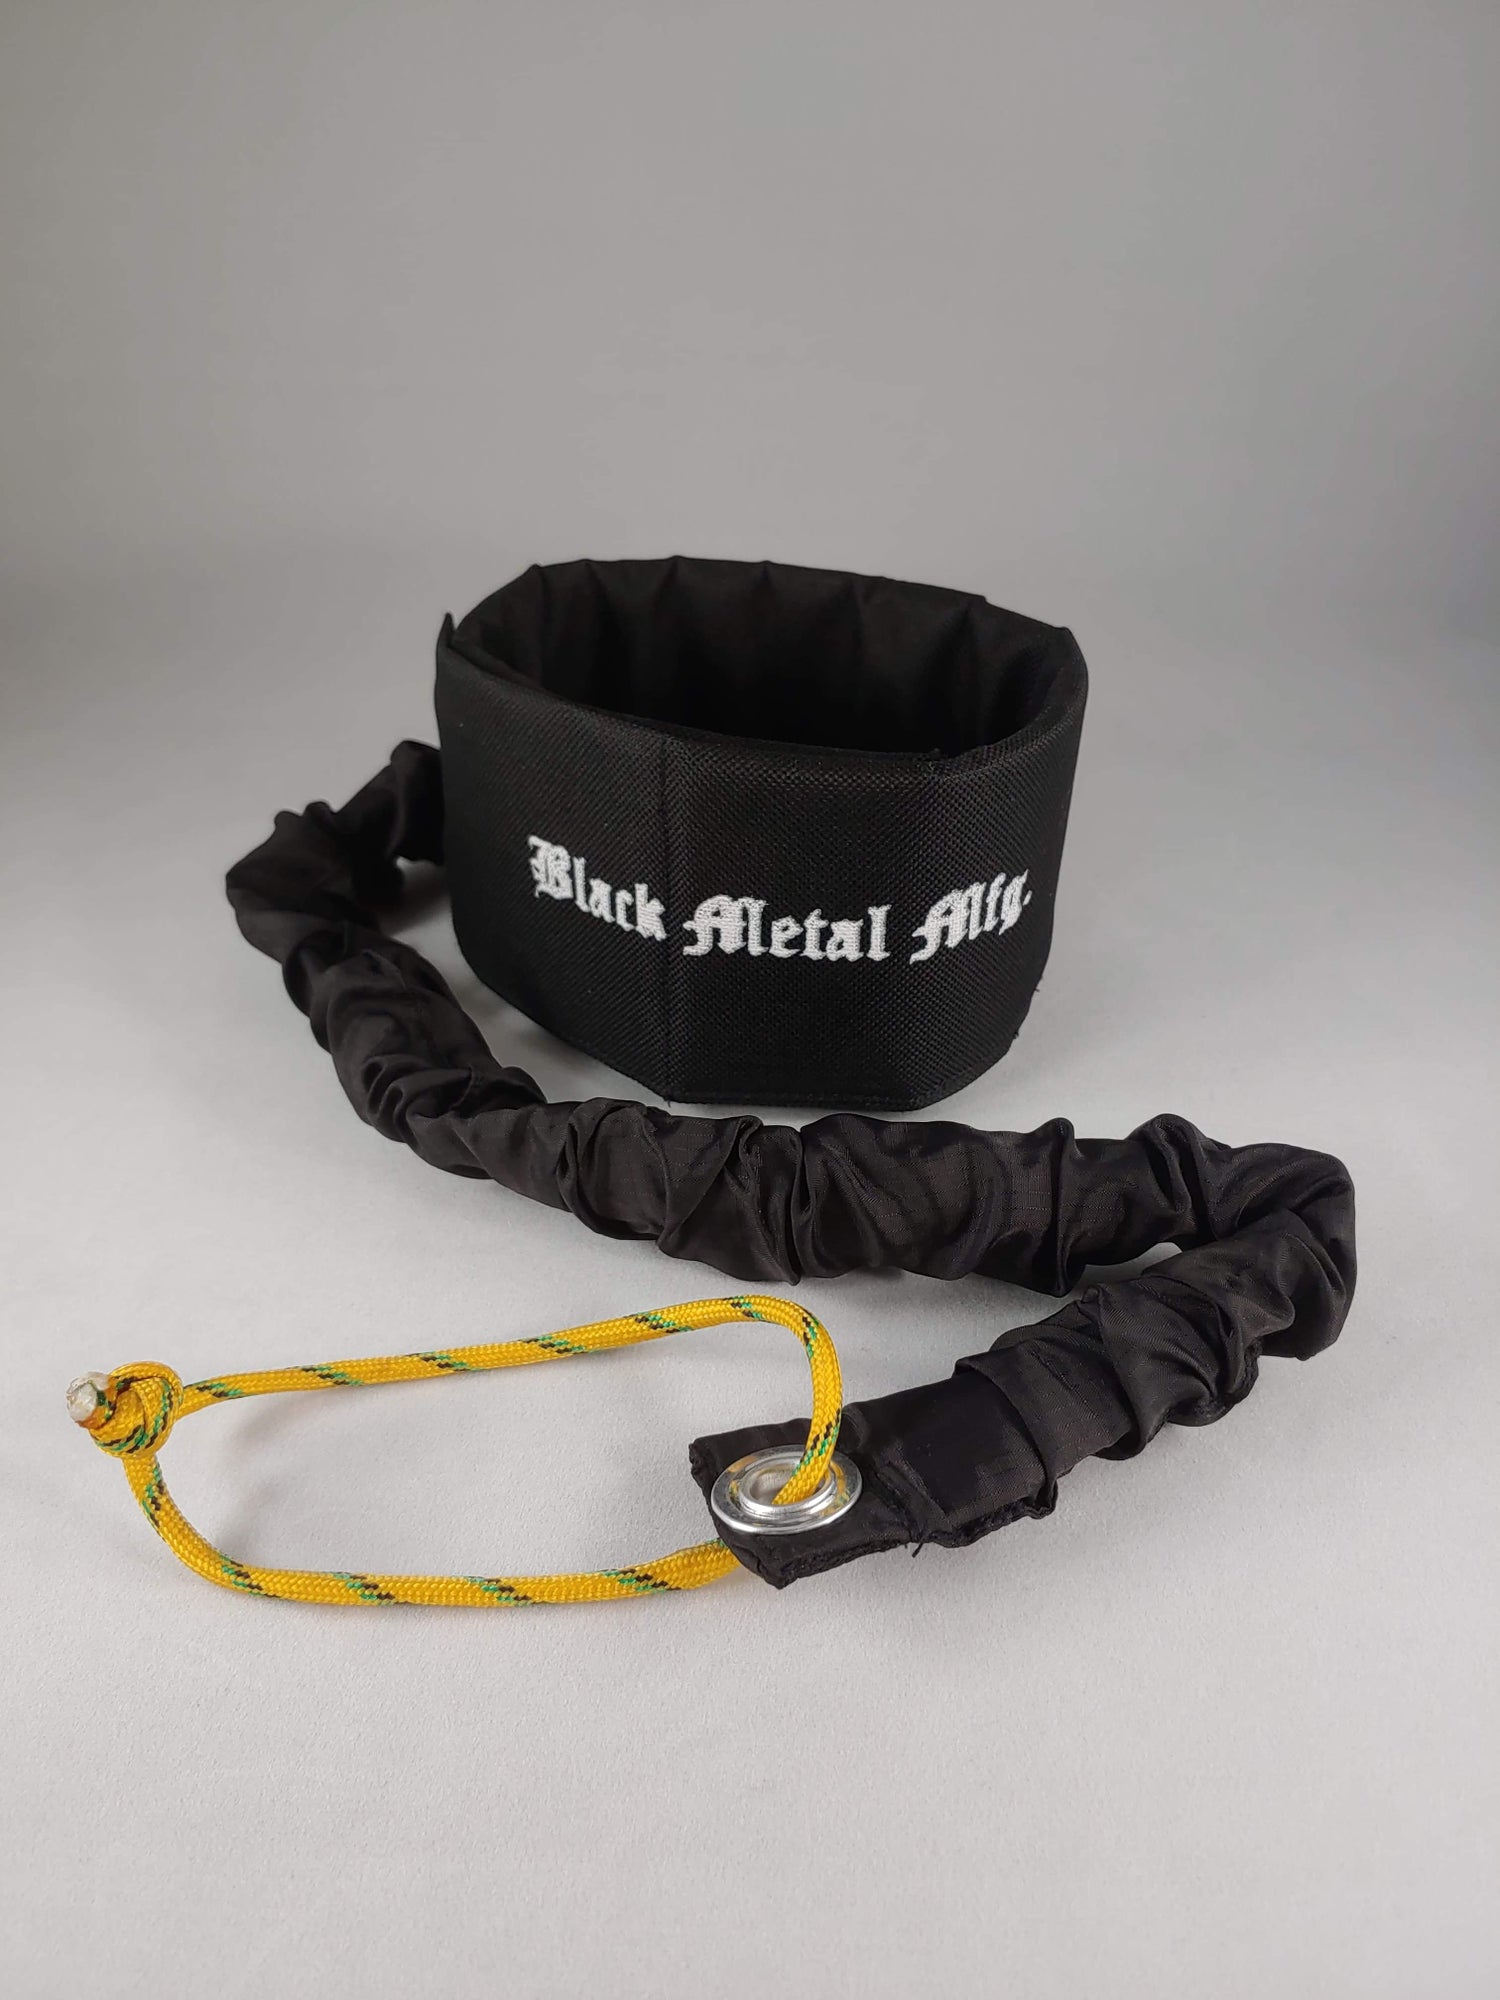 Image of Black Metal Mfg. - Board Leash + Free Tee Shirt